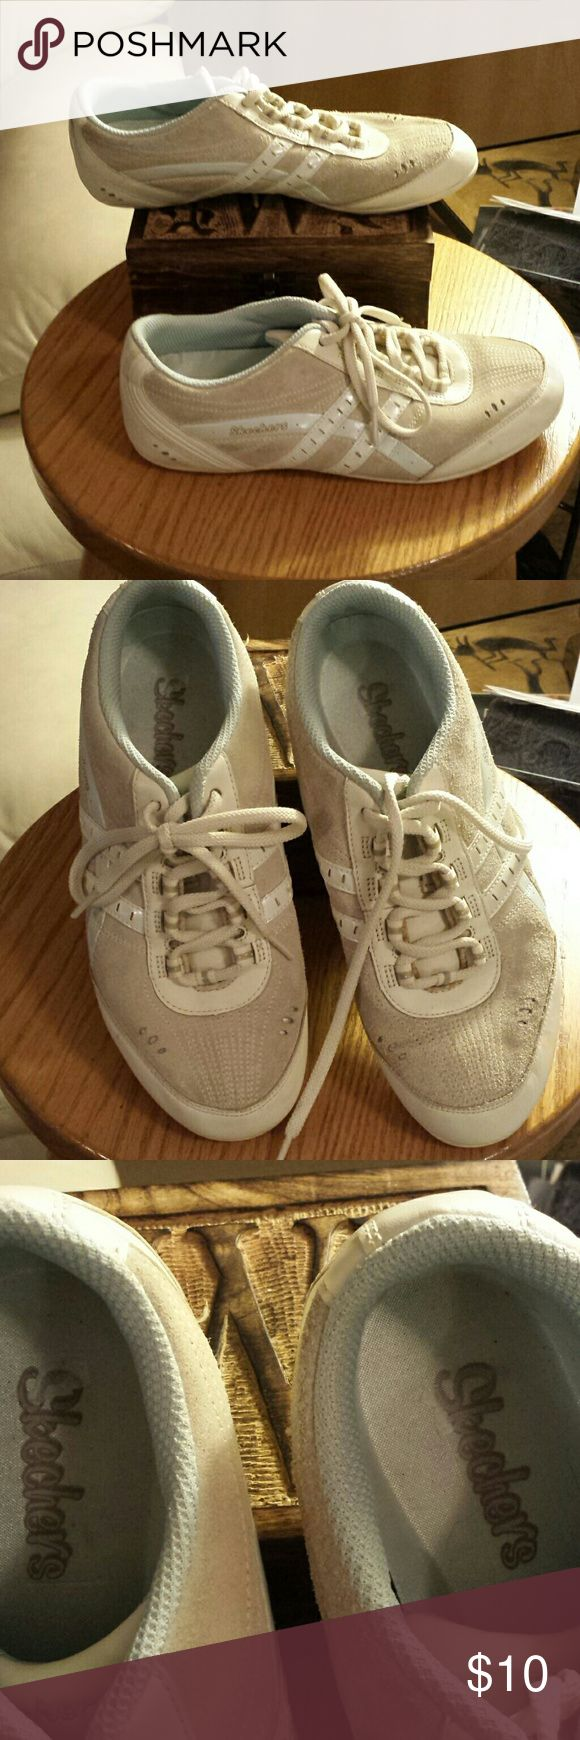 EUC Skechers sneakers These sneakers are in excellent condition!  Perfect for everyday wear! Skechers Shoes Athletic Shoes